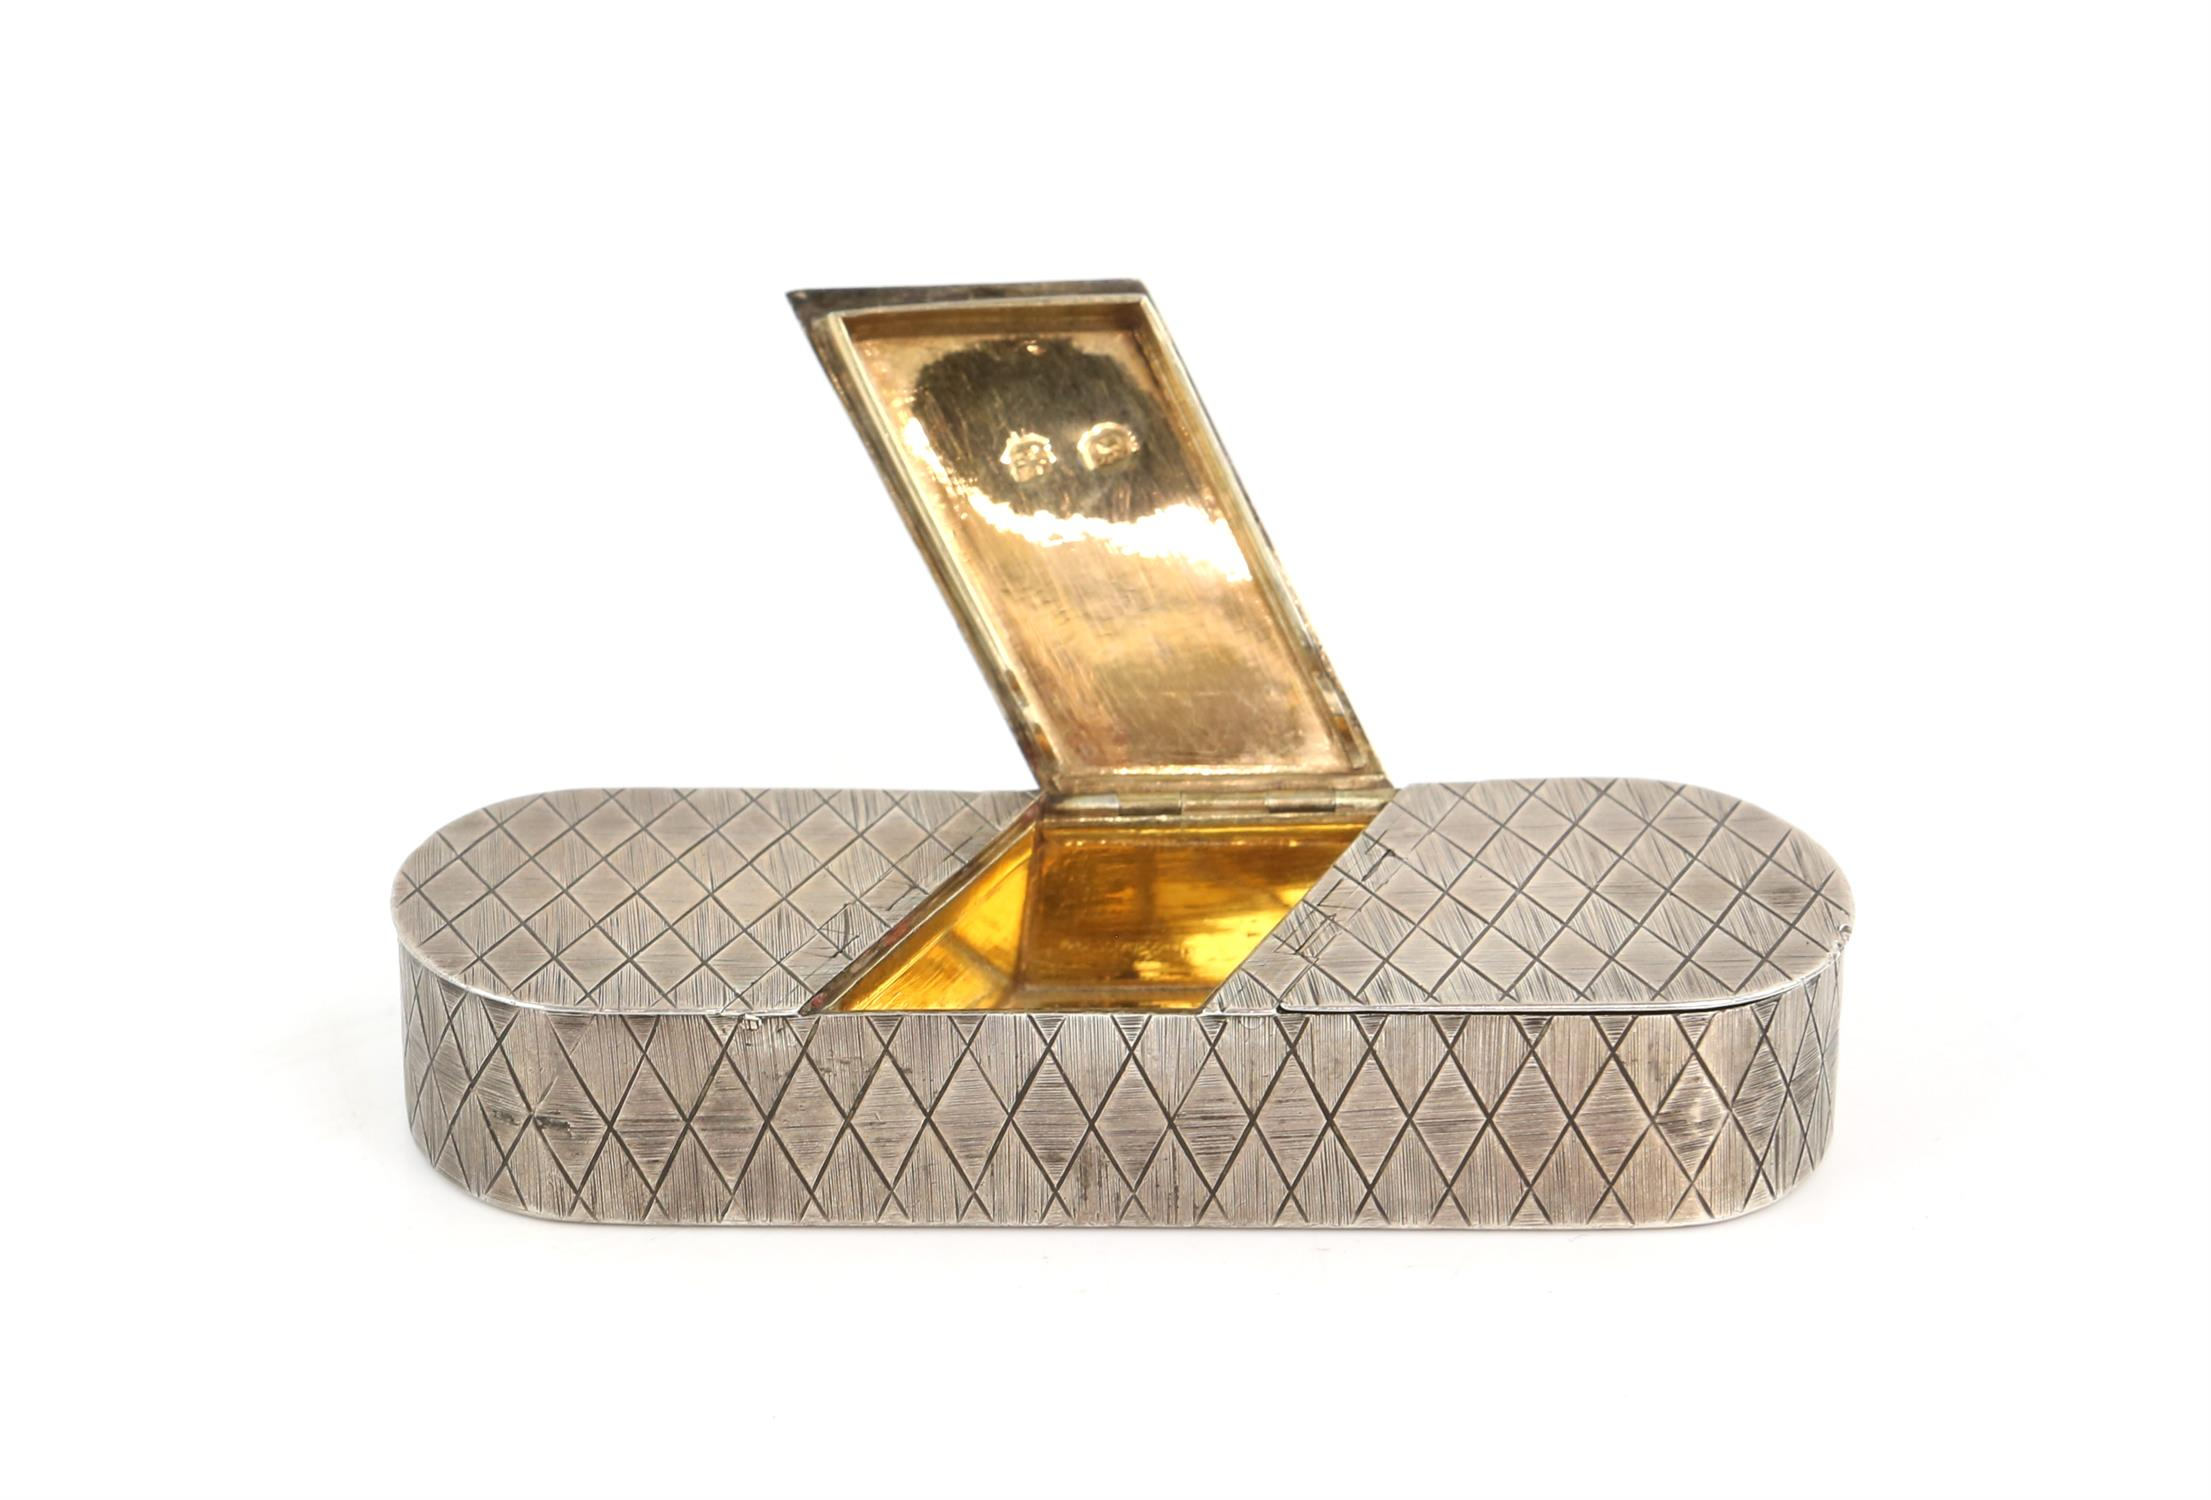 George III silver triple oval snuff box by Thomas Phipps & Edward Robinson, with diamond patterned - Image 2 of 7